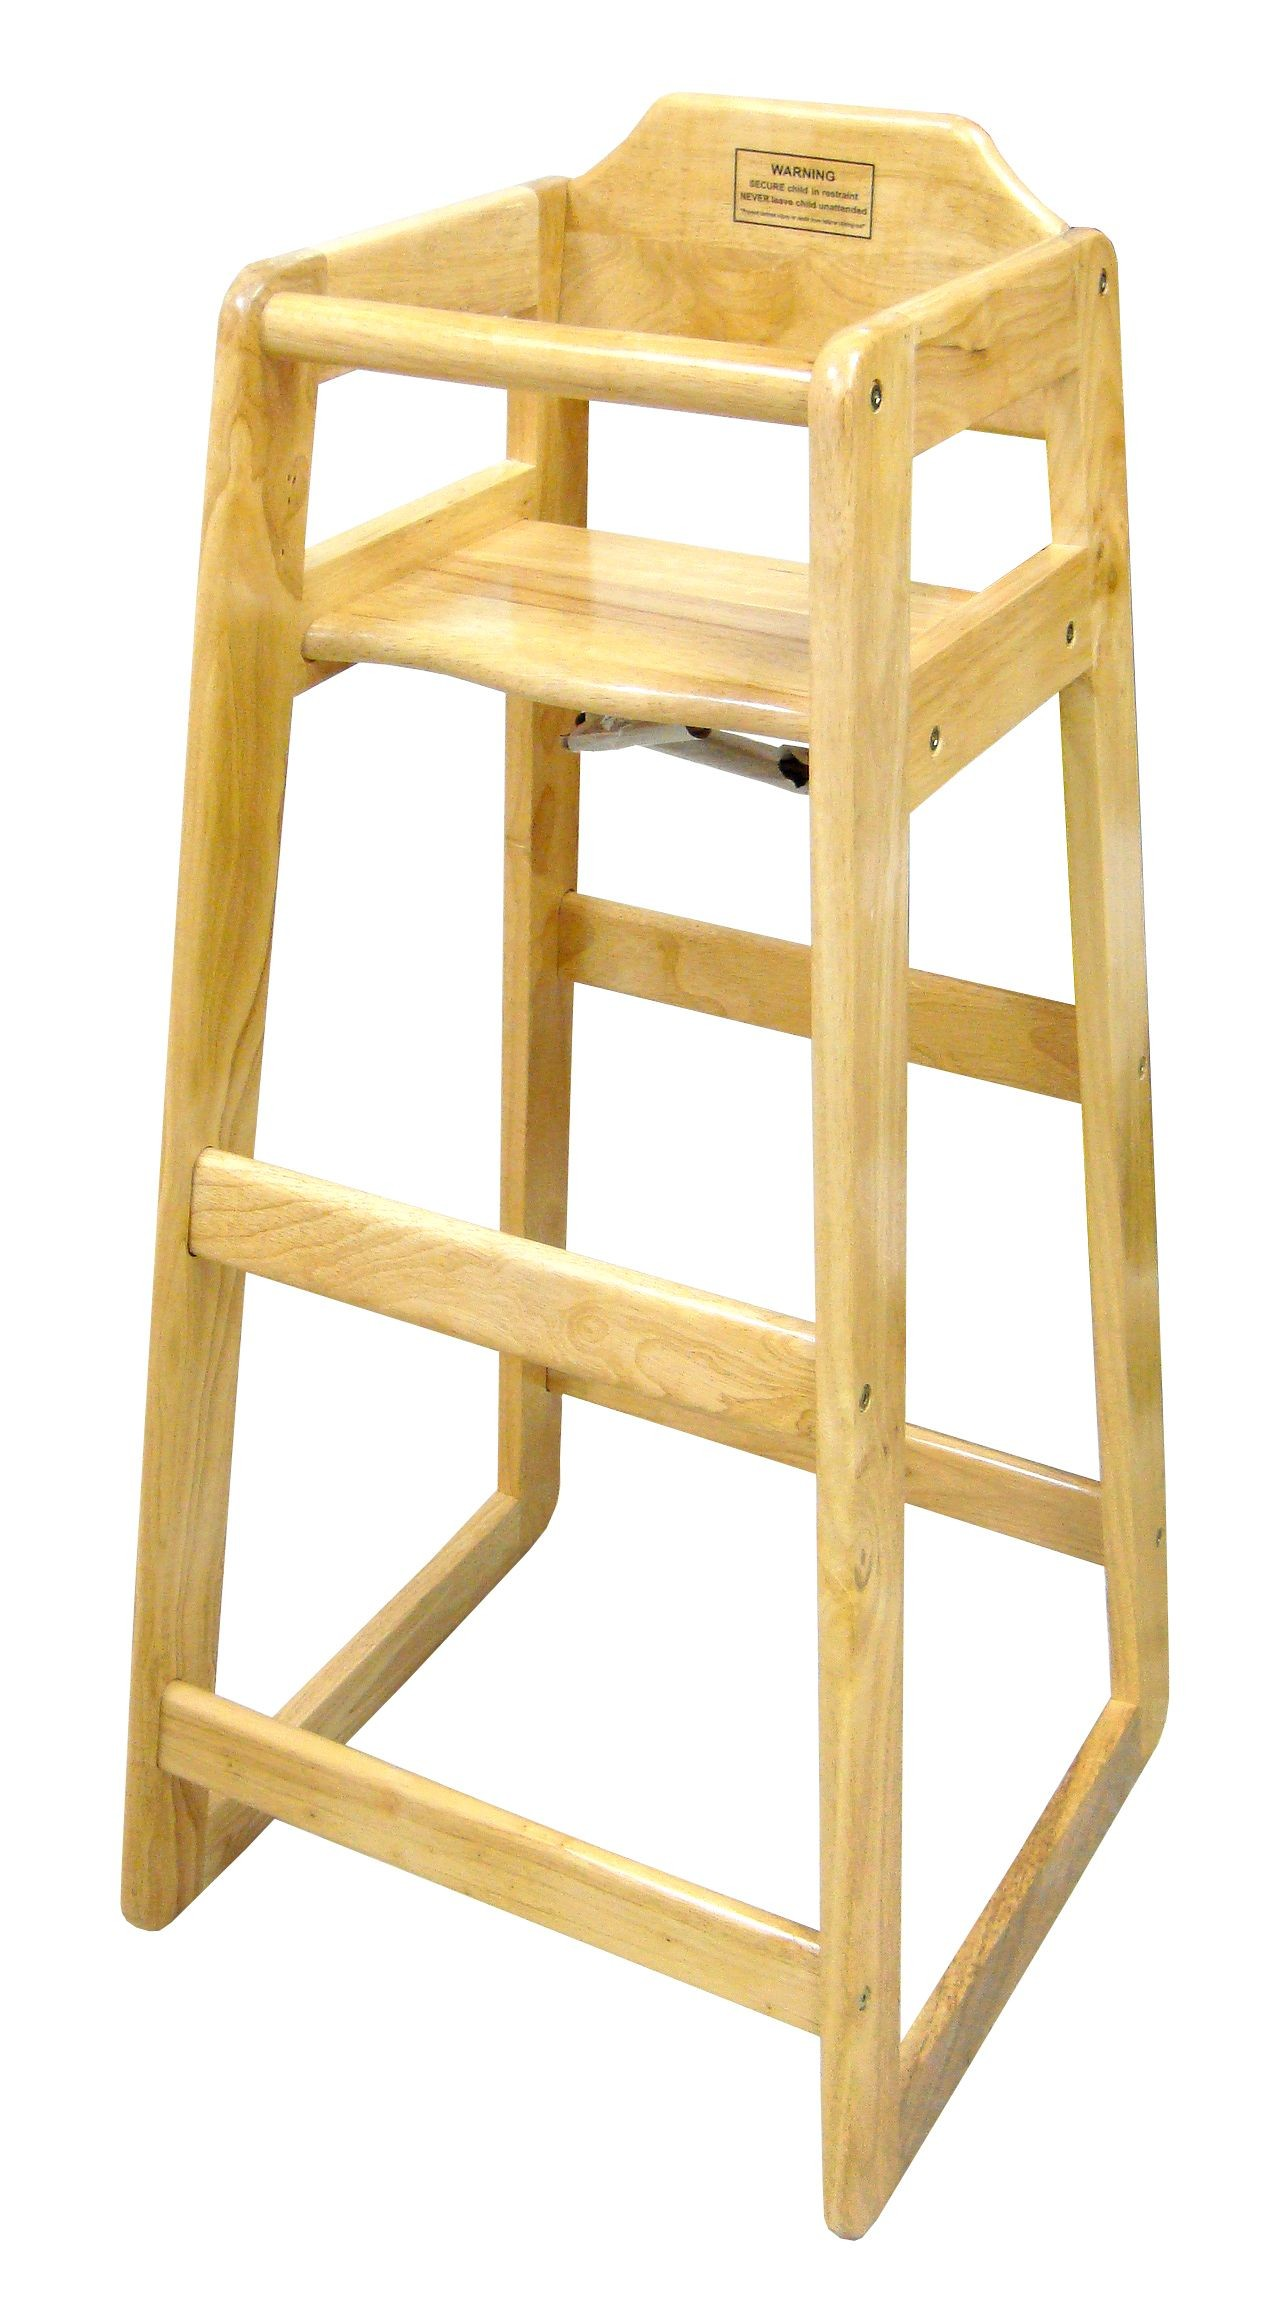 table height high chair rustic ladder back chairs winco chh 601 wooden pub 41 quot lionsdeal